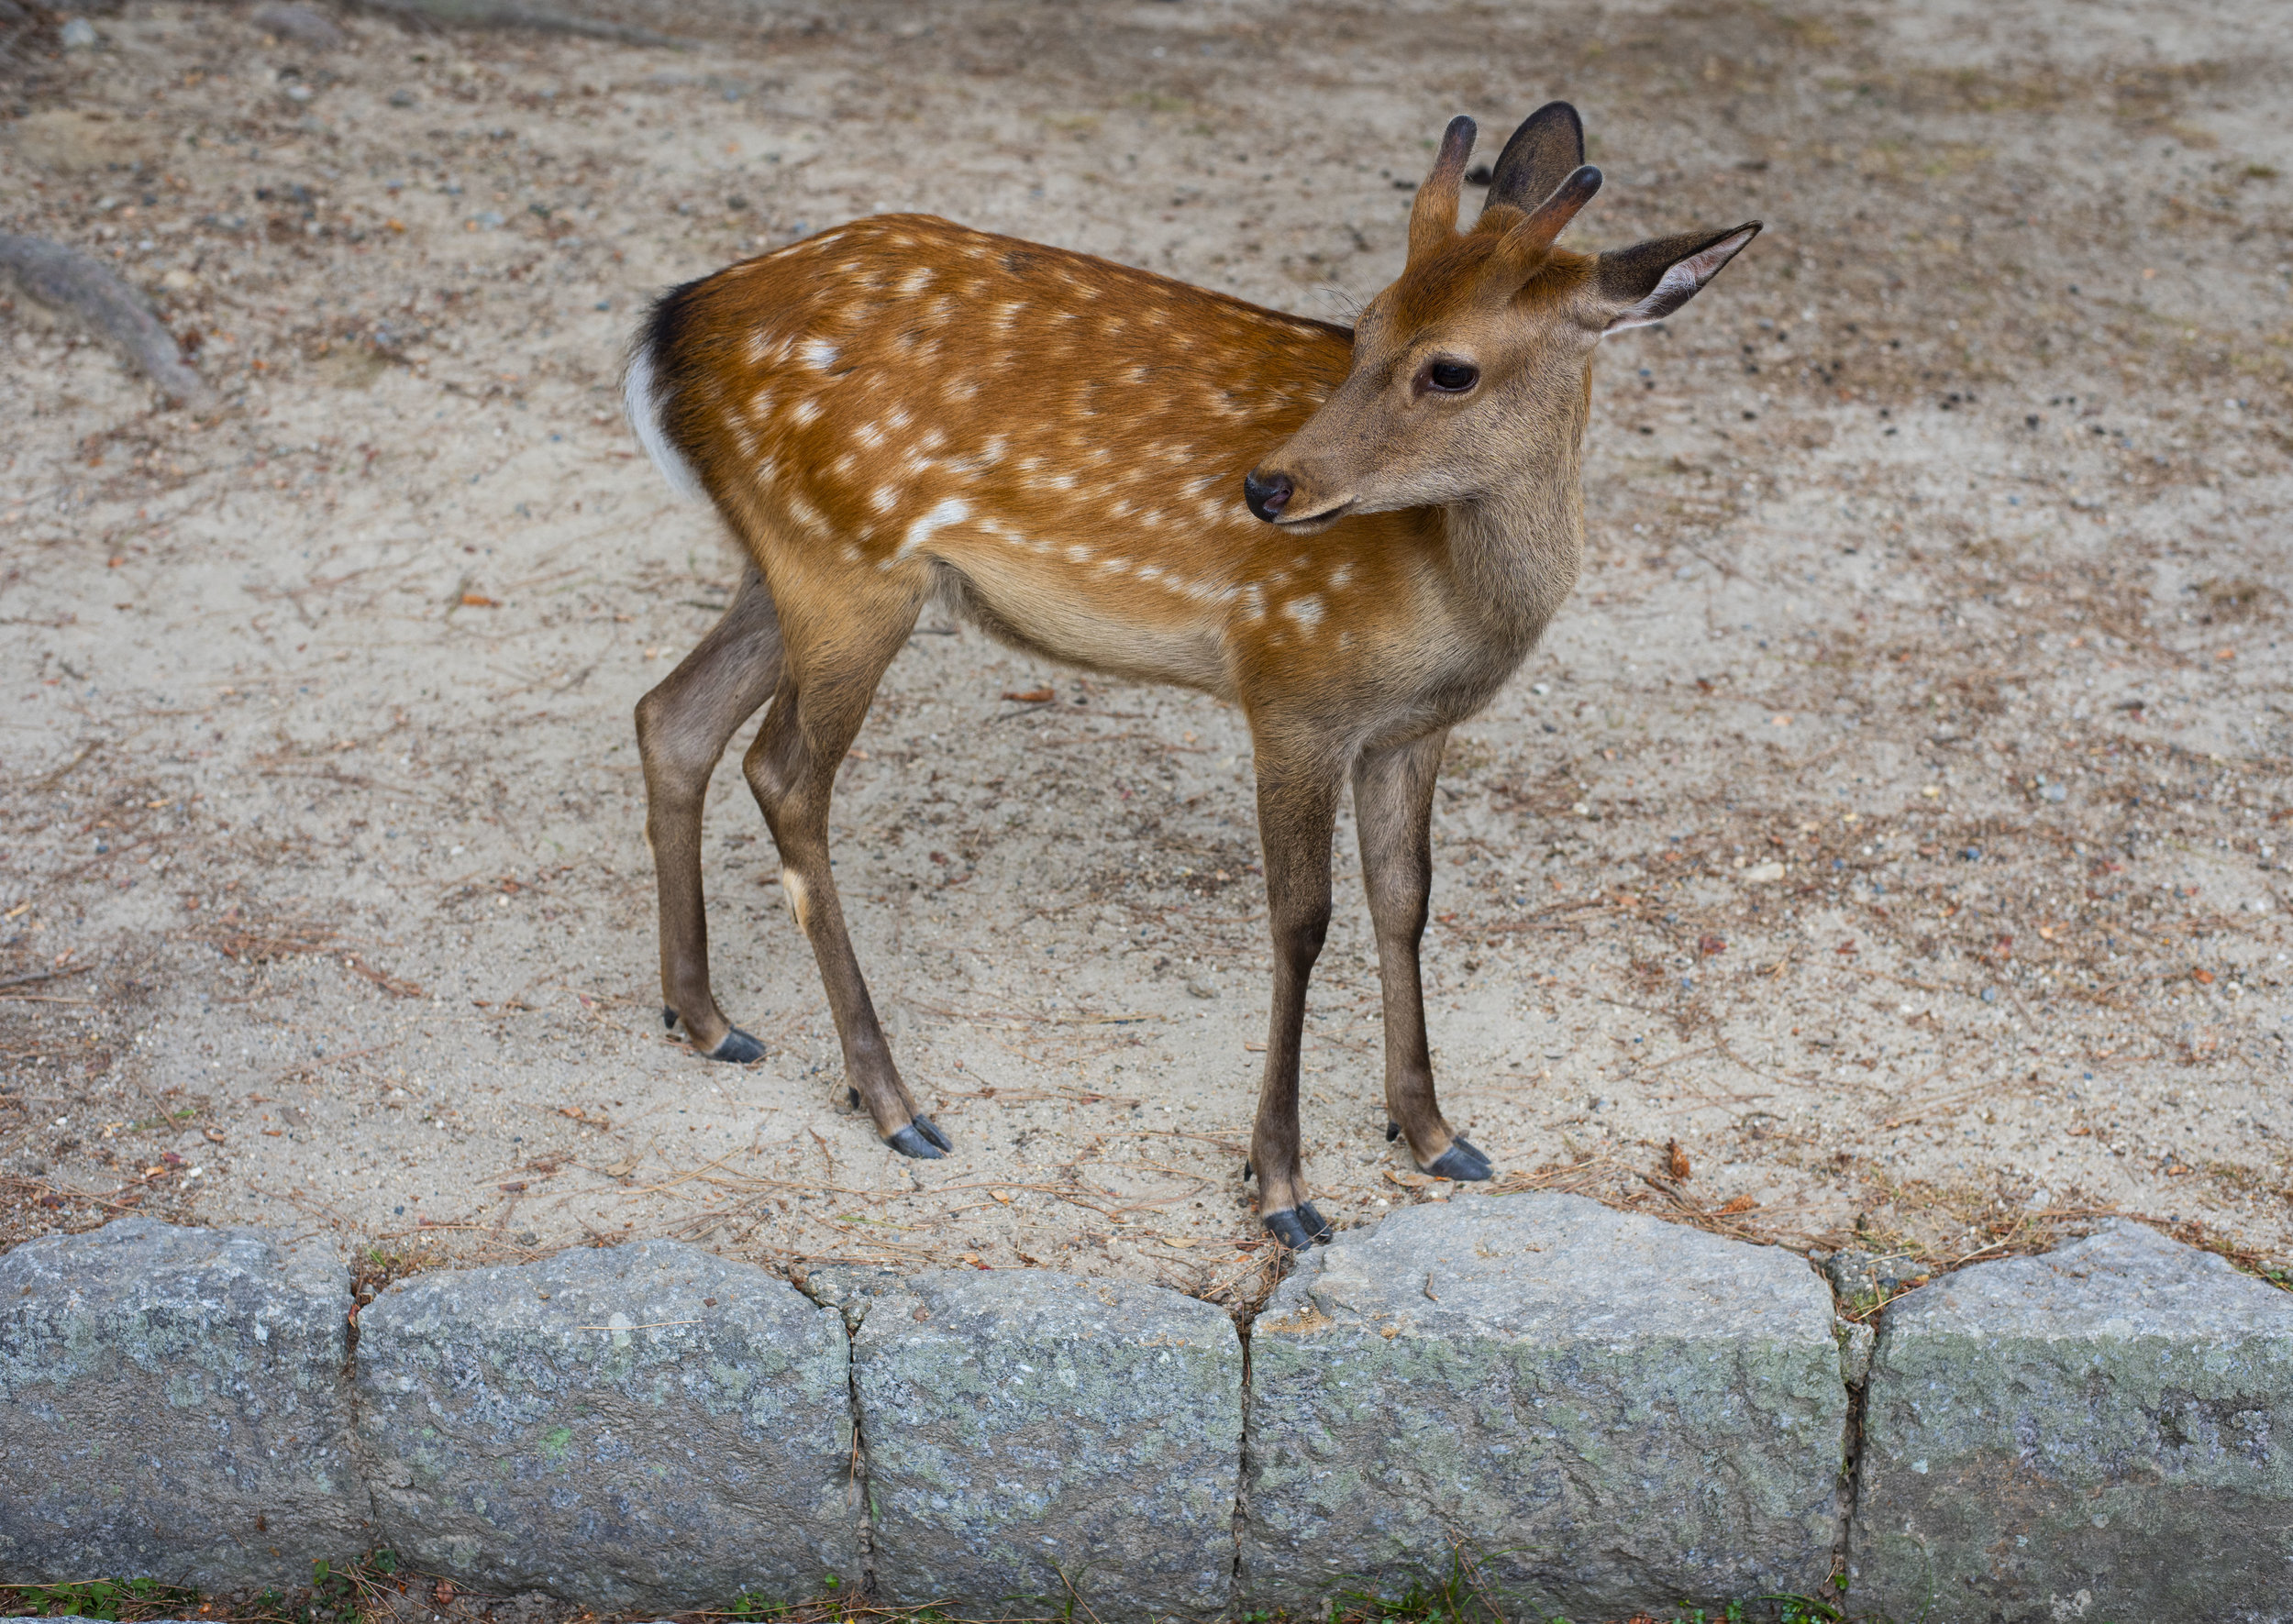 Cute deer in Nara, Japan